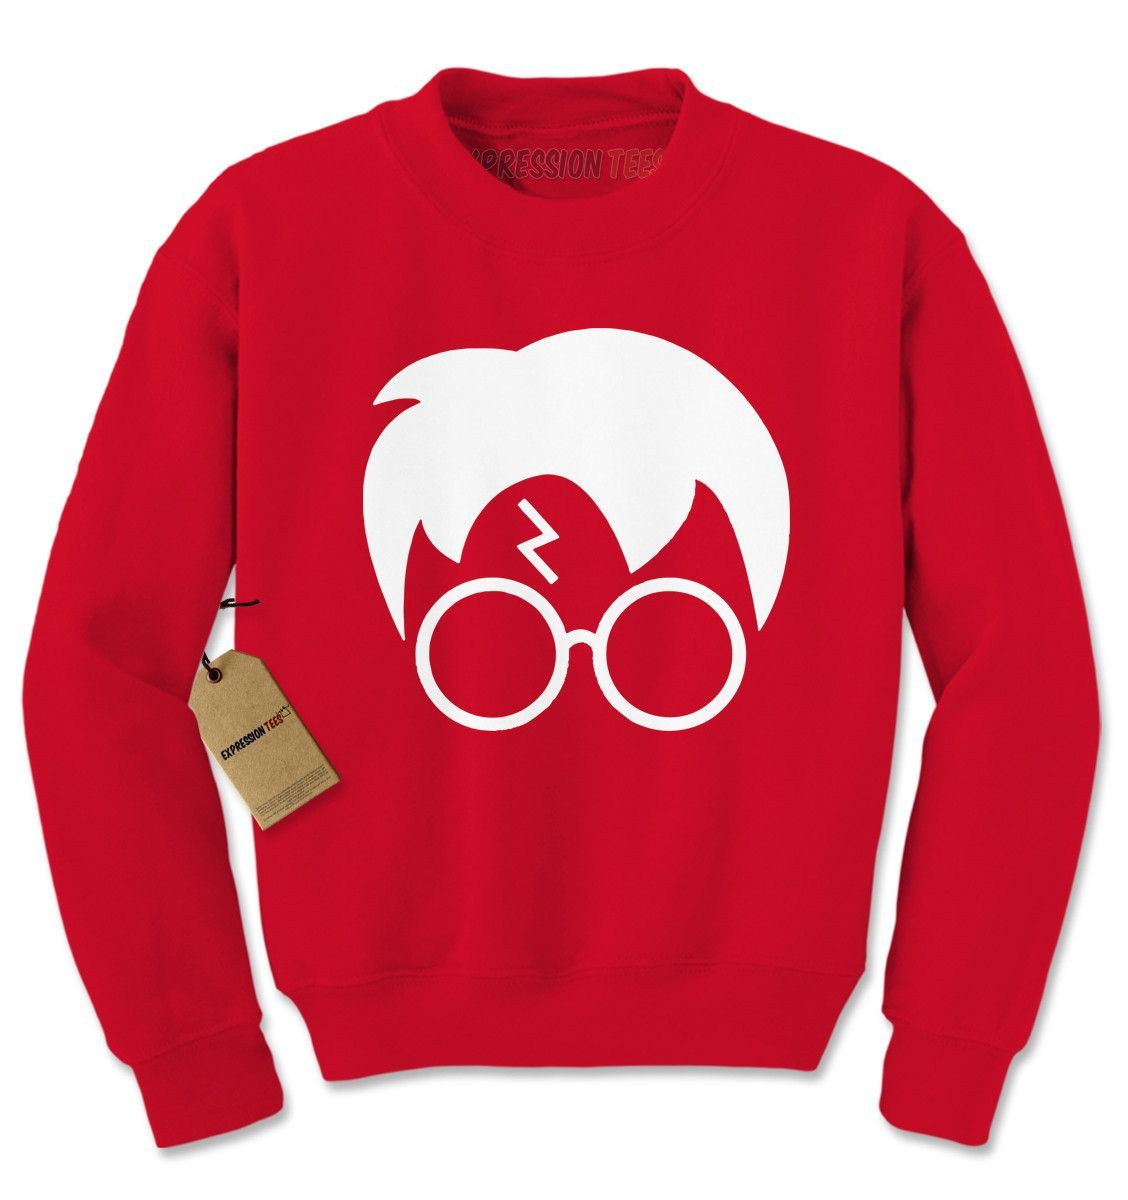 Harry Glasses Lightning Bolt Hair Adult Crewneck Sweatshirt